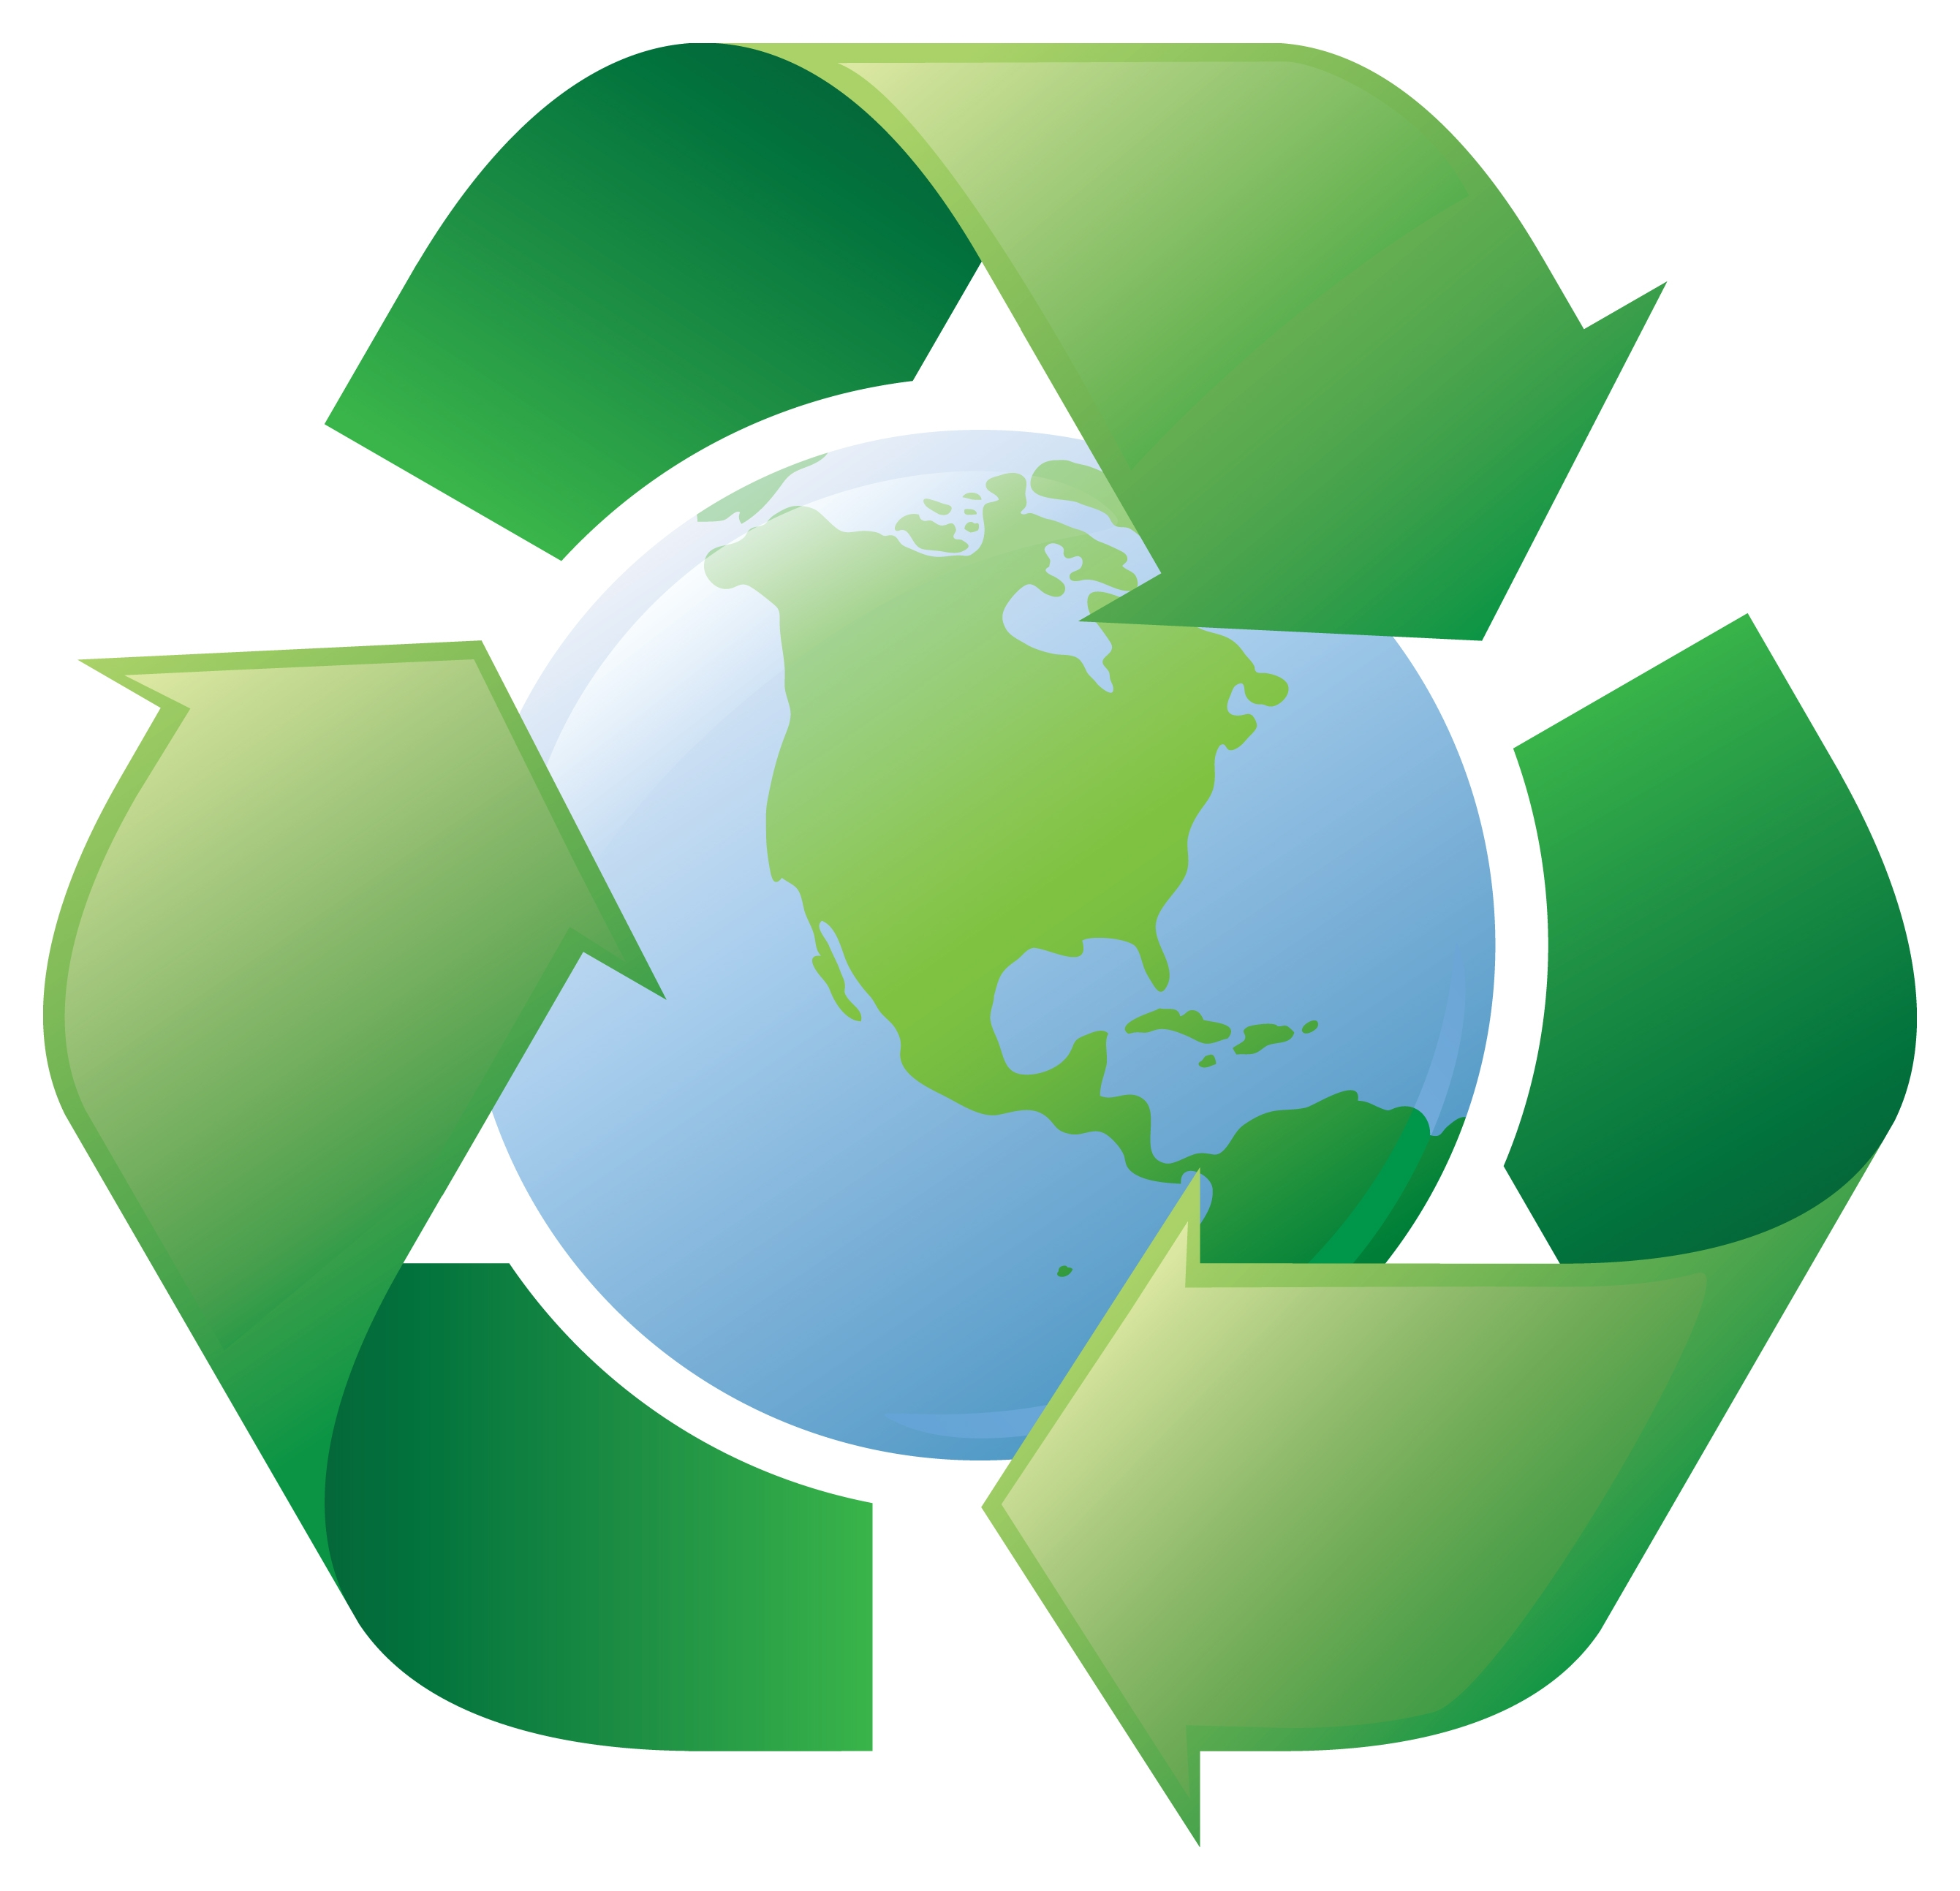 2681x2587 We Recycle Clip Art